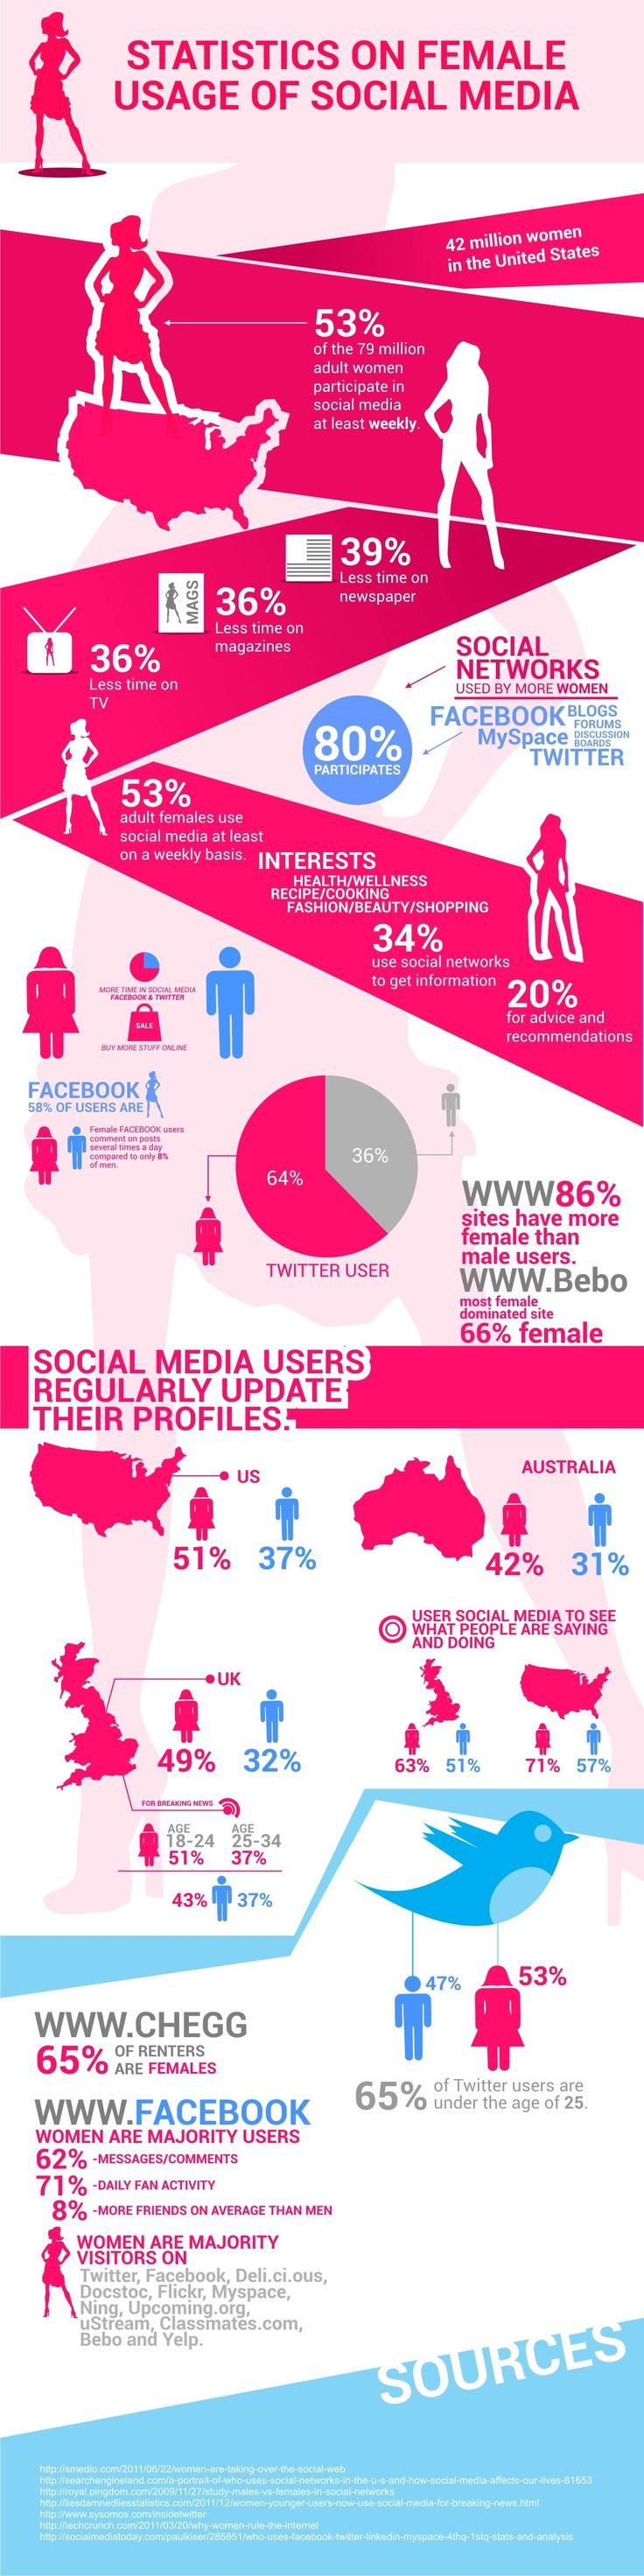 Cómo usan las mujeres en el Social Media #infografia #infographic #socialmediaSocial Network, Digital Marketing, Socialnetwork, Social Media Infographic, Female Usage, Social Networks, Socialmedia, Medium, Statistics